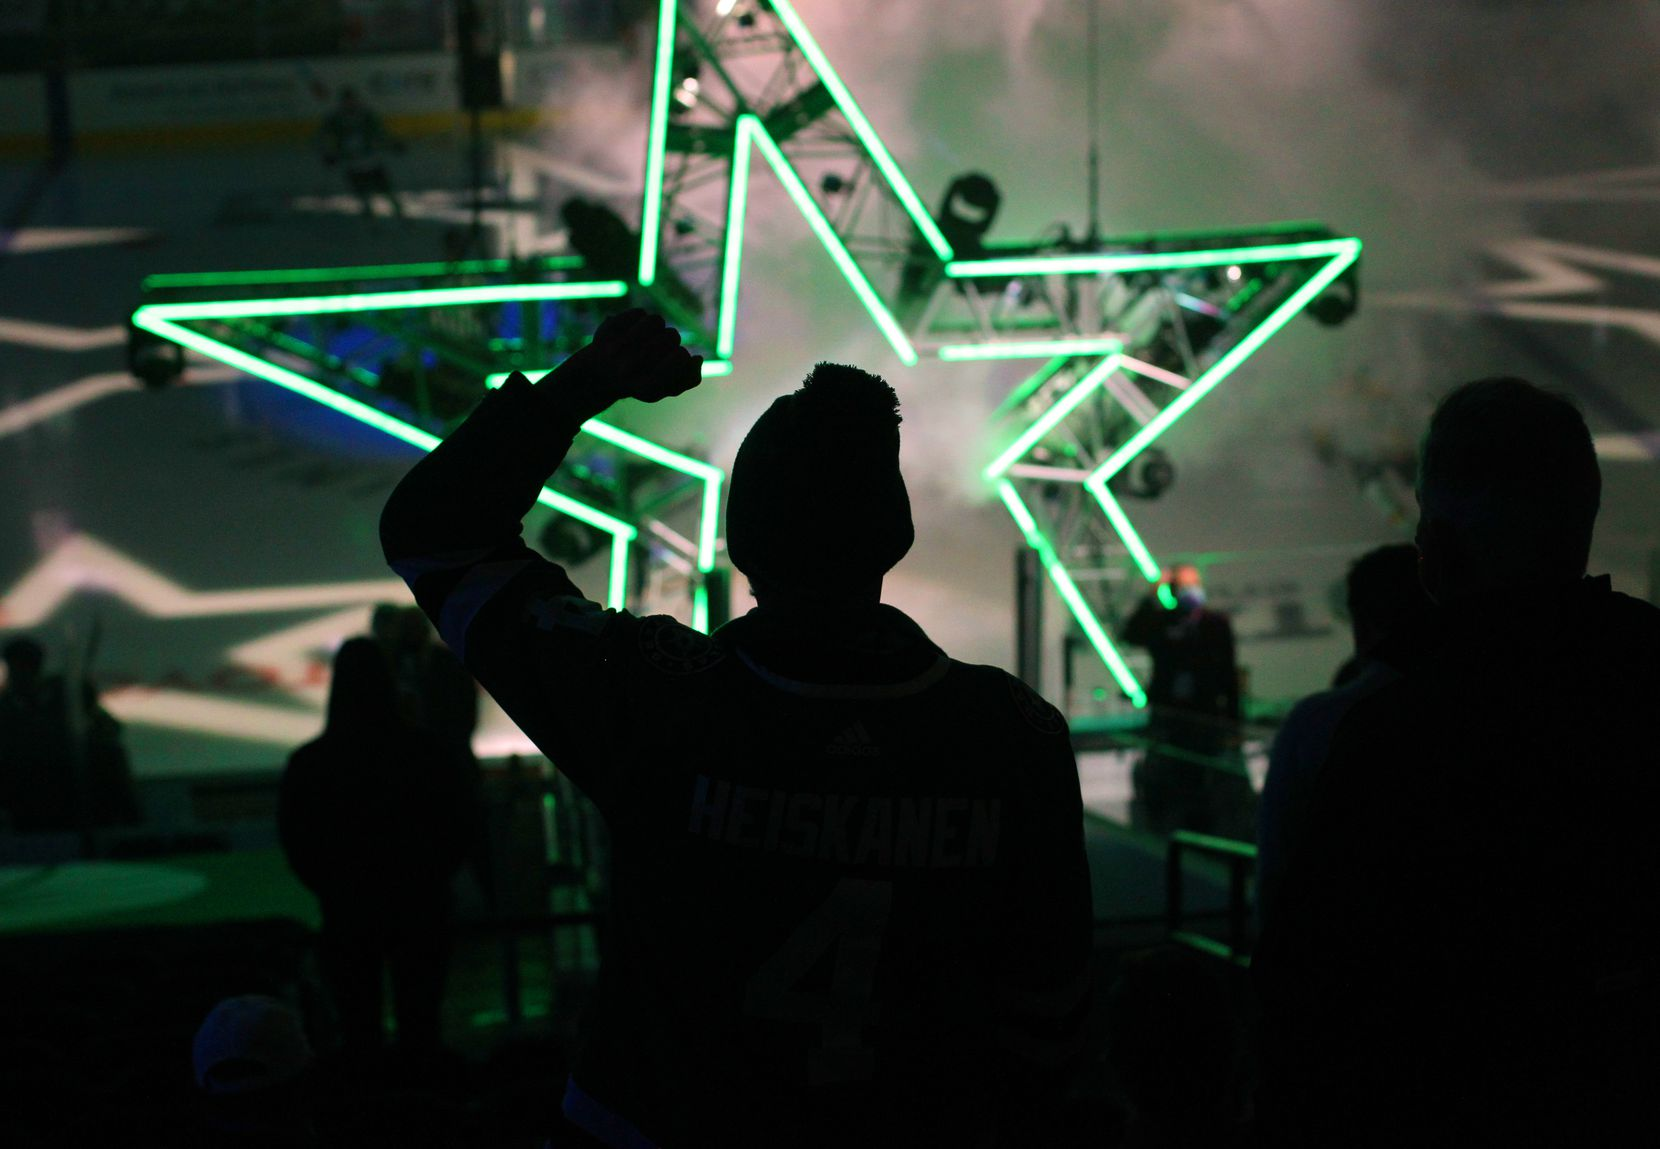 A Dallas Stars fan pumps his fist in the air as the Stars take to the ice just prior to the puck drop against the Nashville Predators. The two teams played their NHL game at the American Airlines Center in Dallas on January 24 , 2021. (Steve Hamm/ Special Contributor)